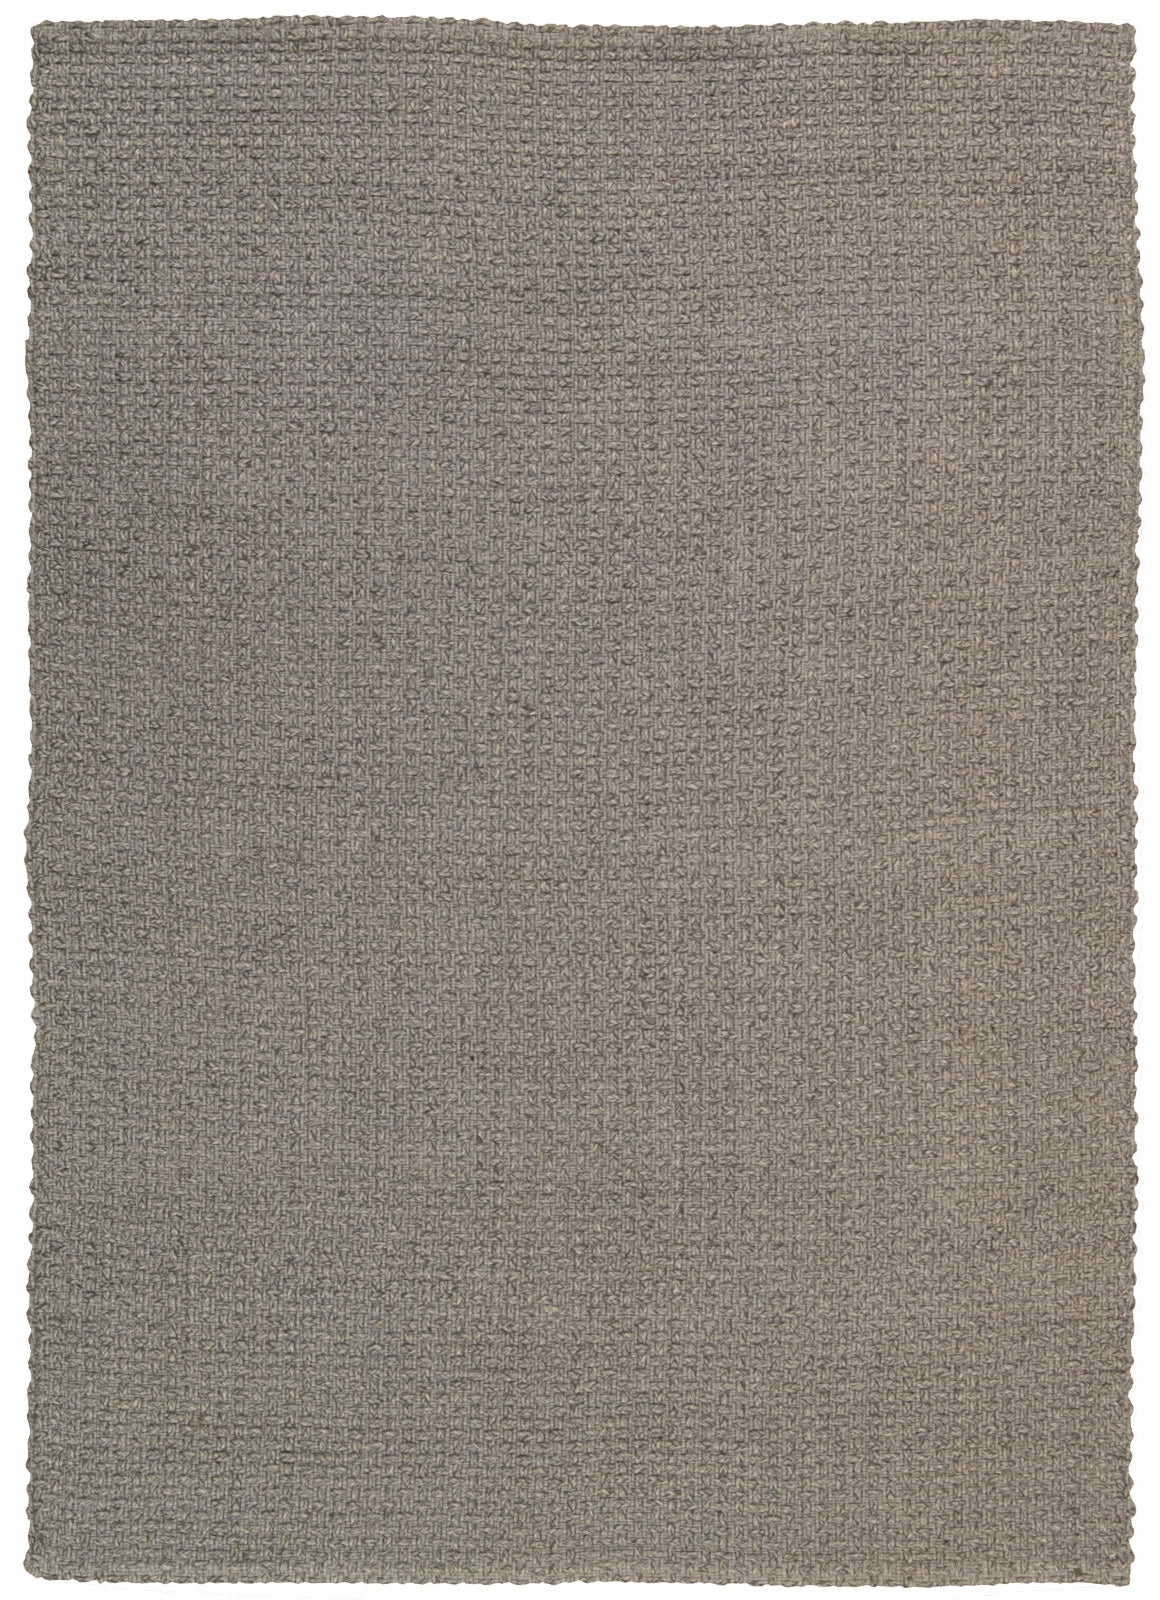 Nourison Sand And Slate SNS01 Grey Area Rug by Joseph Abboud main image